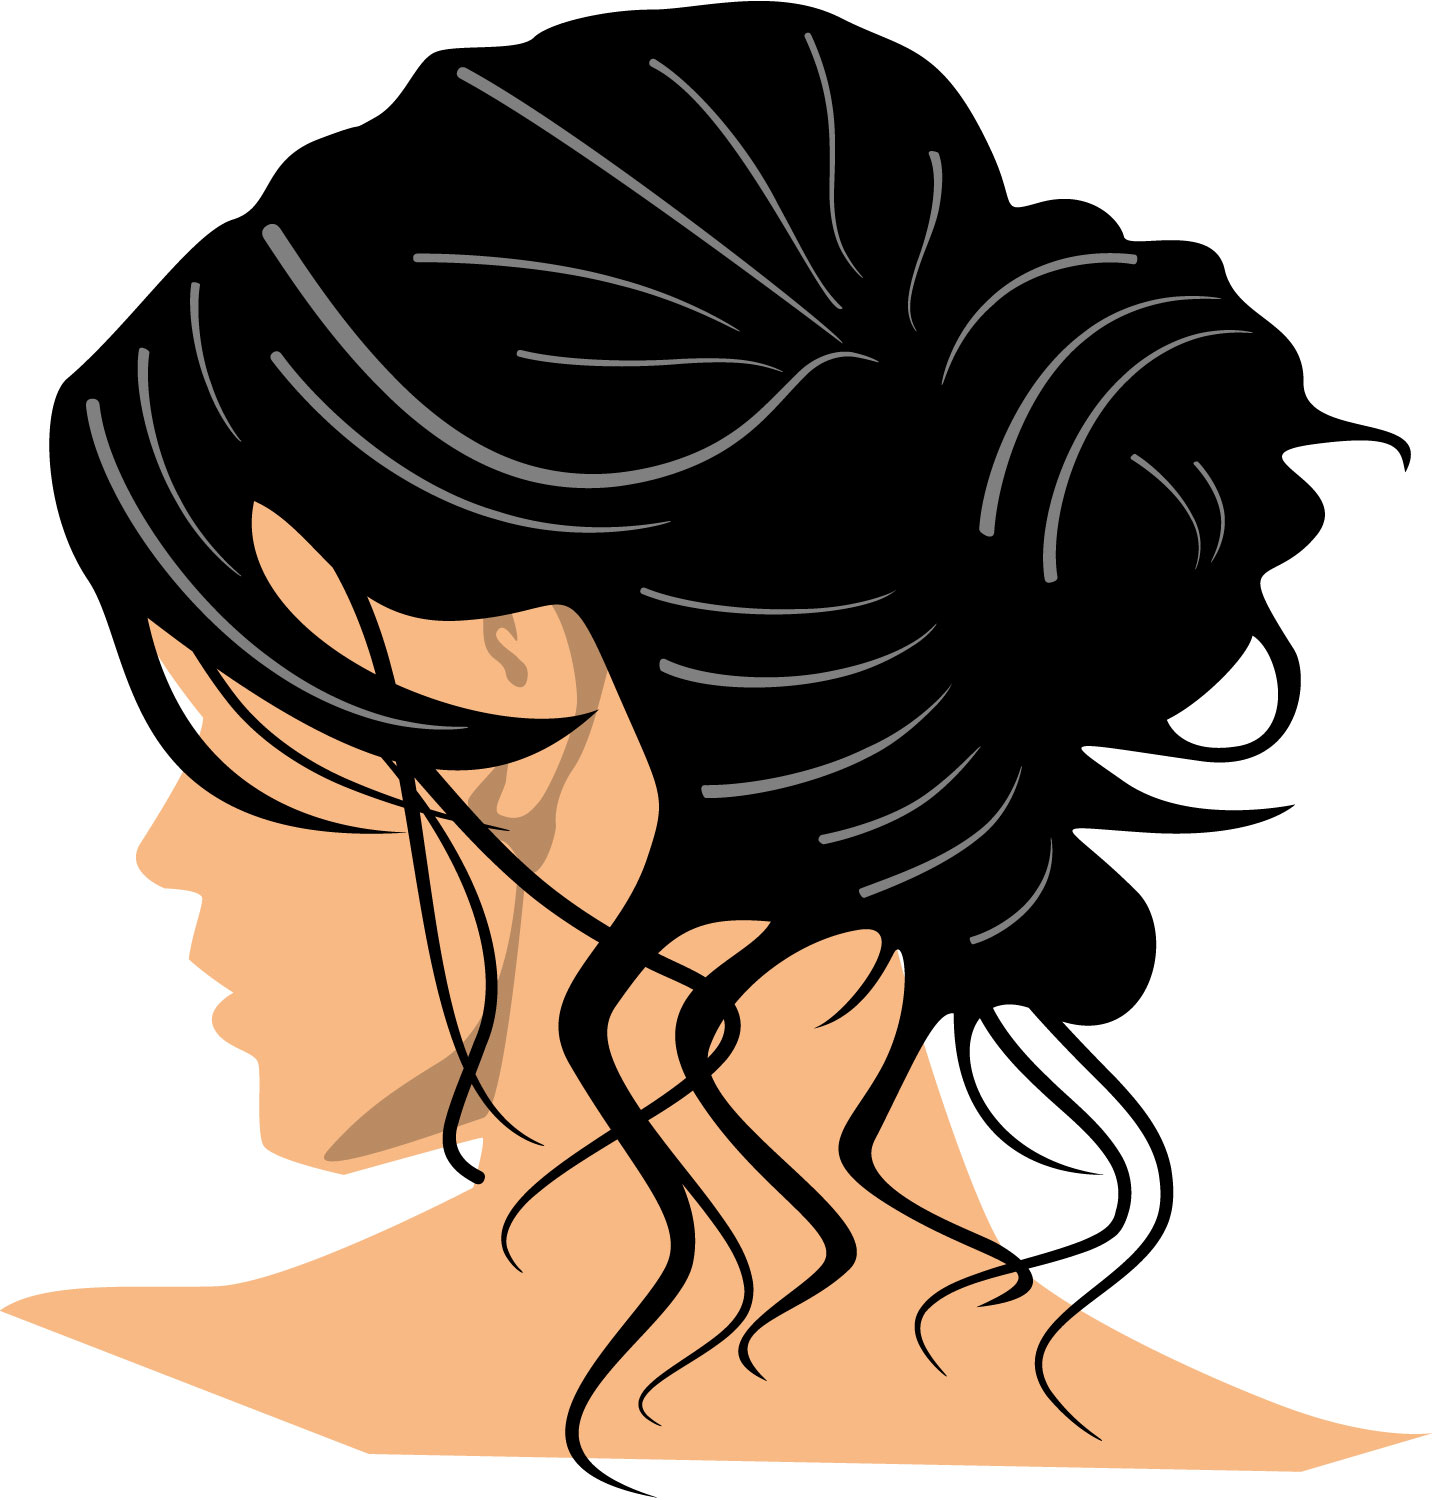 Haircut Clip Art Free. Haircut. Get Free Printable Hairstyle Pictures